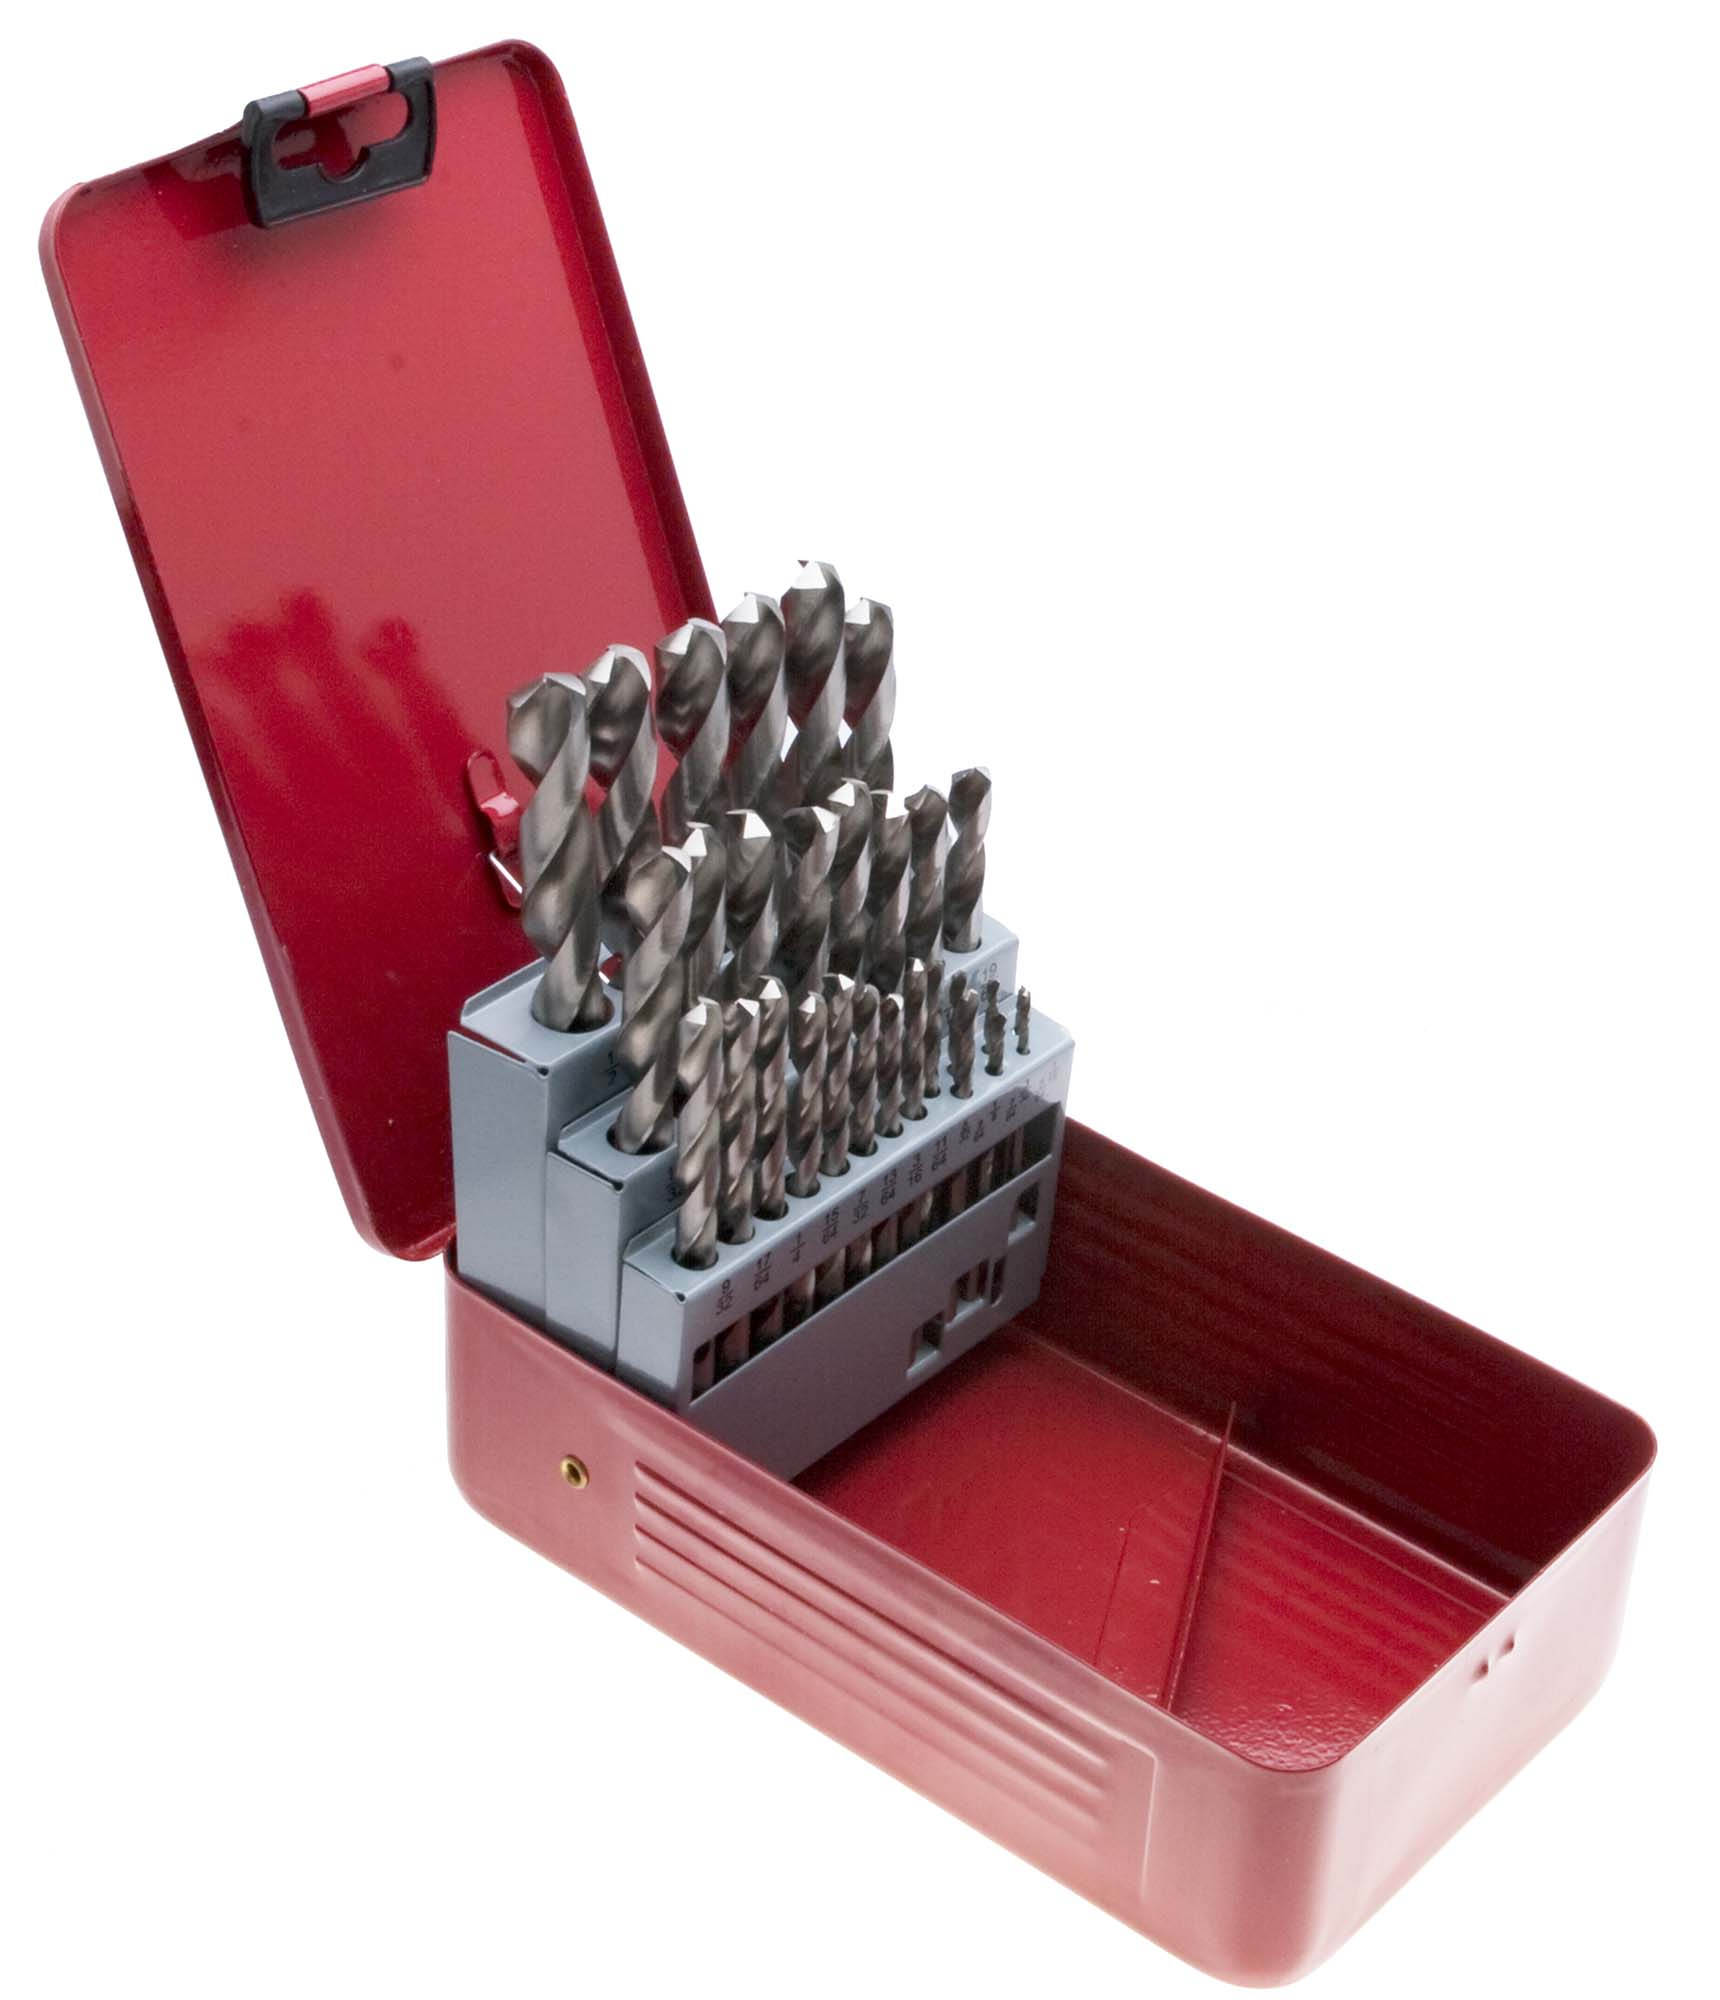 A-Z High Speed Steel Brite Drill Set in Metal Case, 26 bits